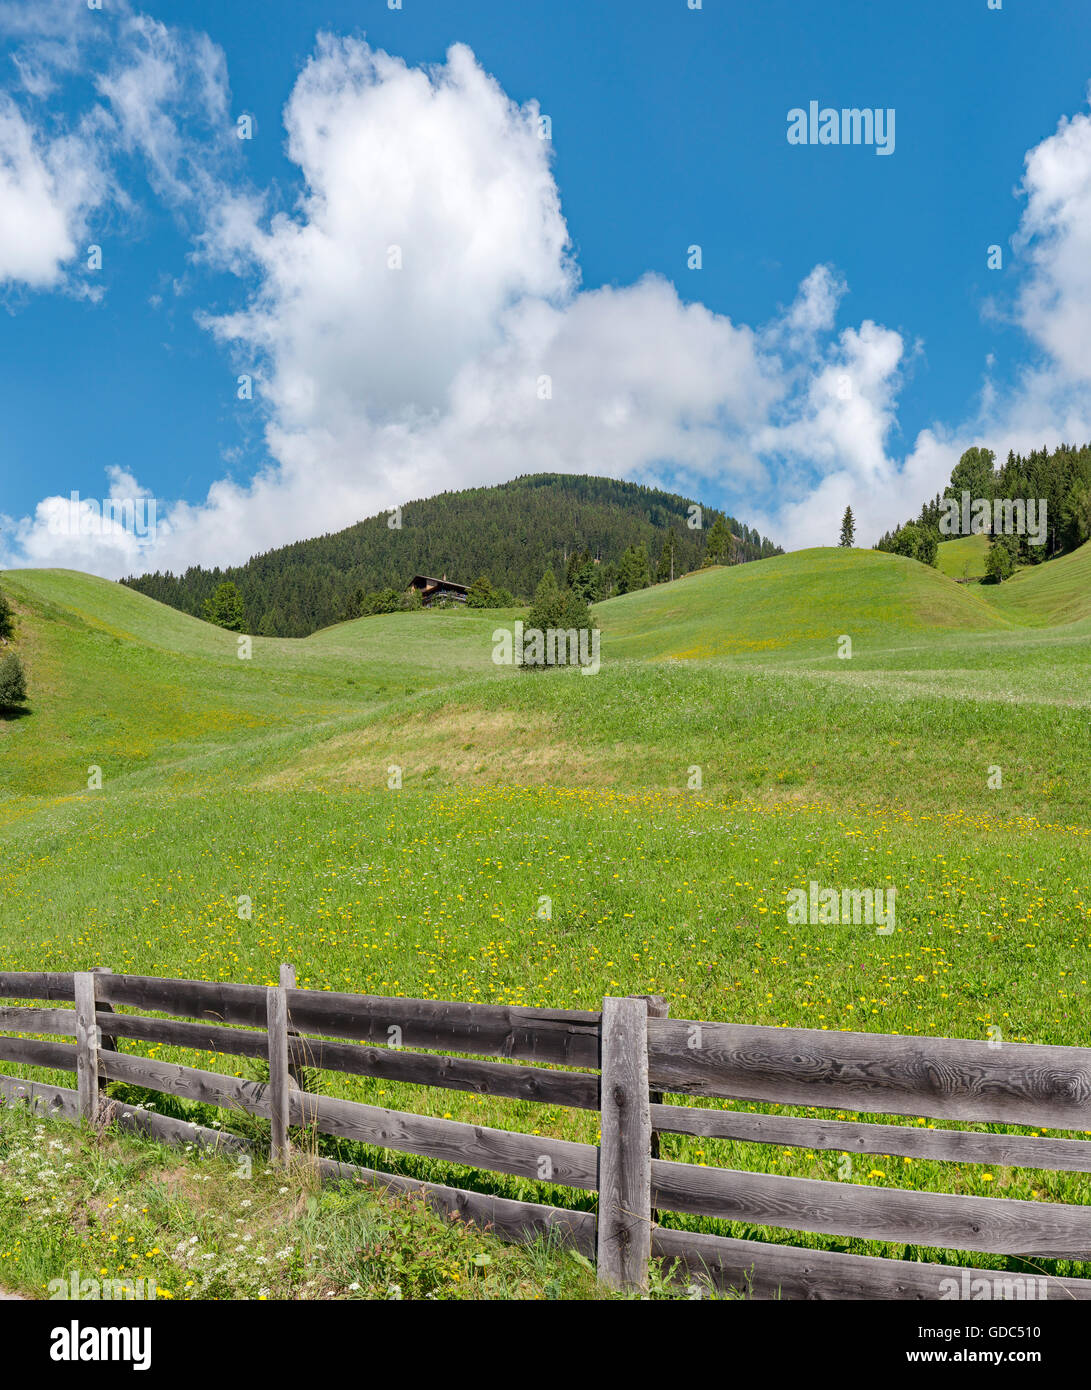 Sillian,Austria,Rolling hills at the mount Sillianberg - Stock Image